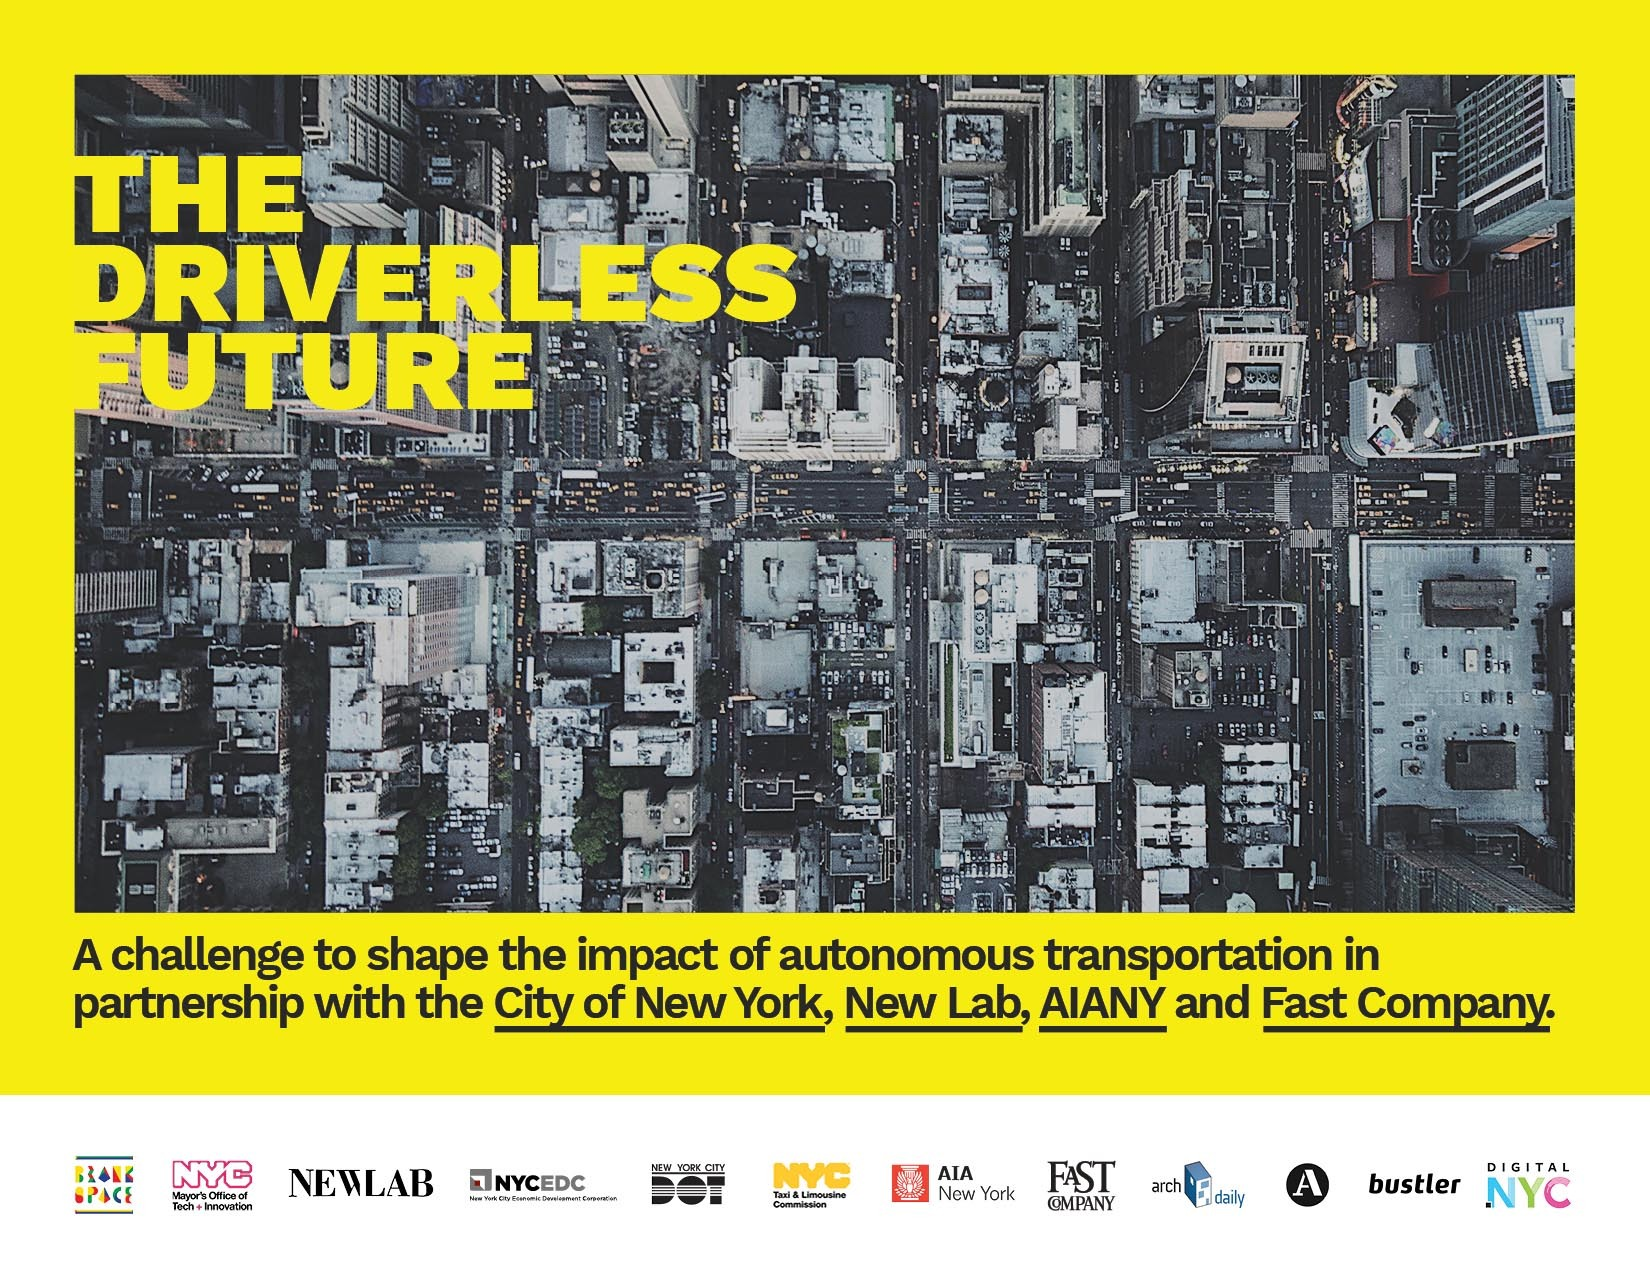 Best Image Call for Submissions: DRIVERLESS FUTURE